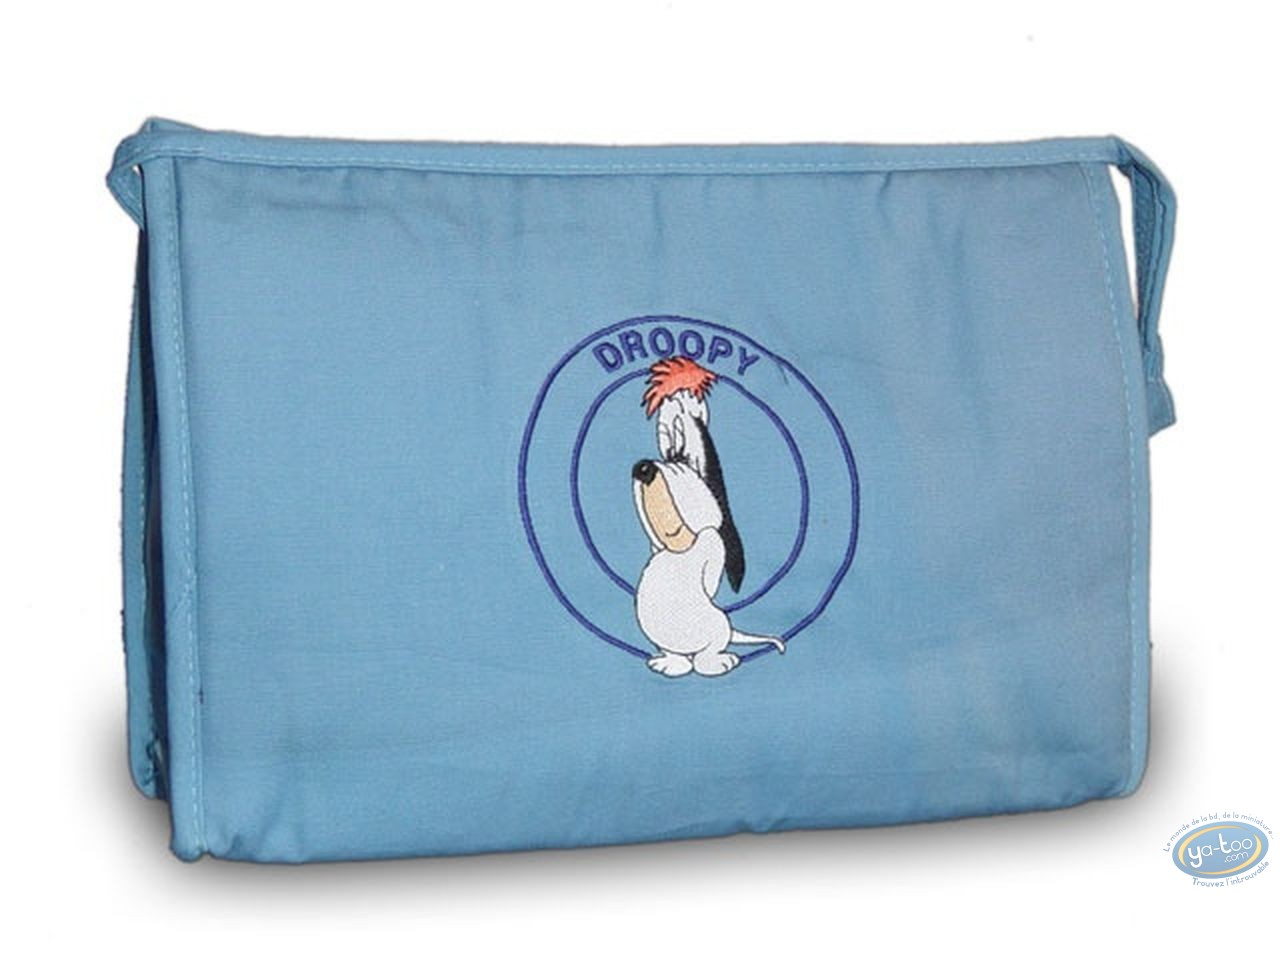 Luggage, Droopy : Toiletry Kit, Tex-Avery: Droopy blue